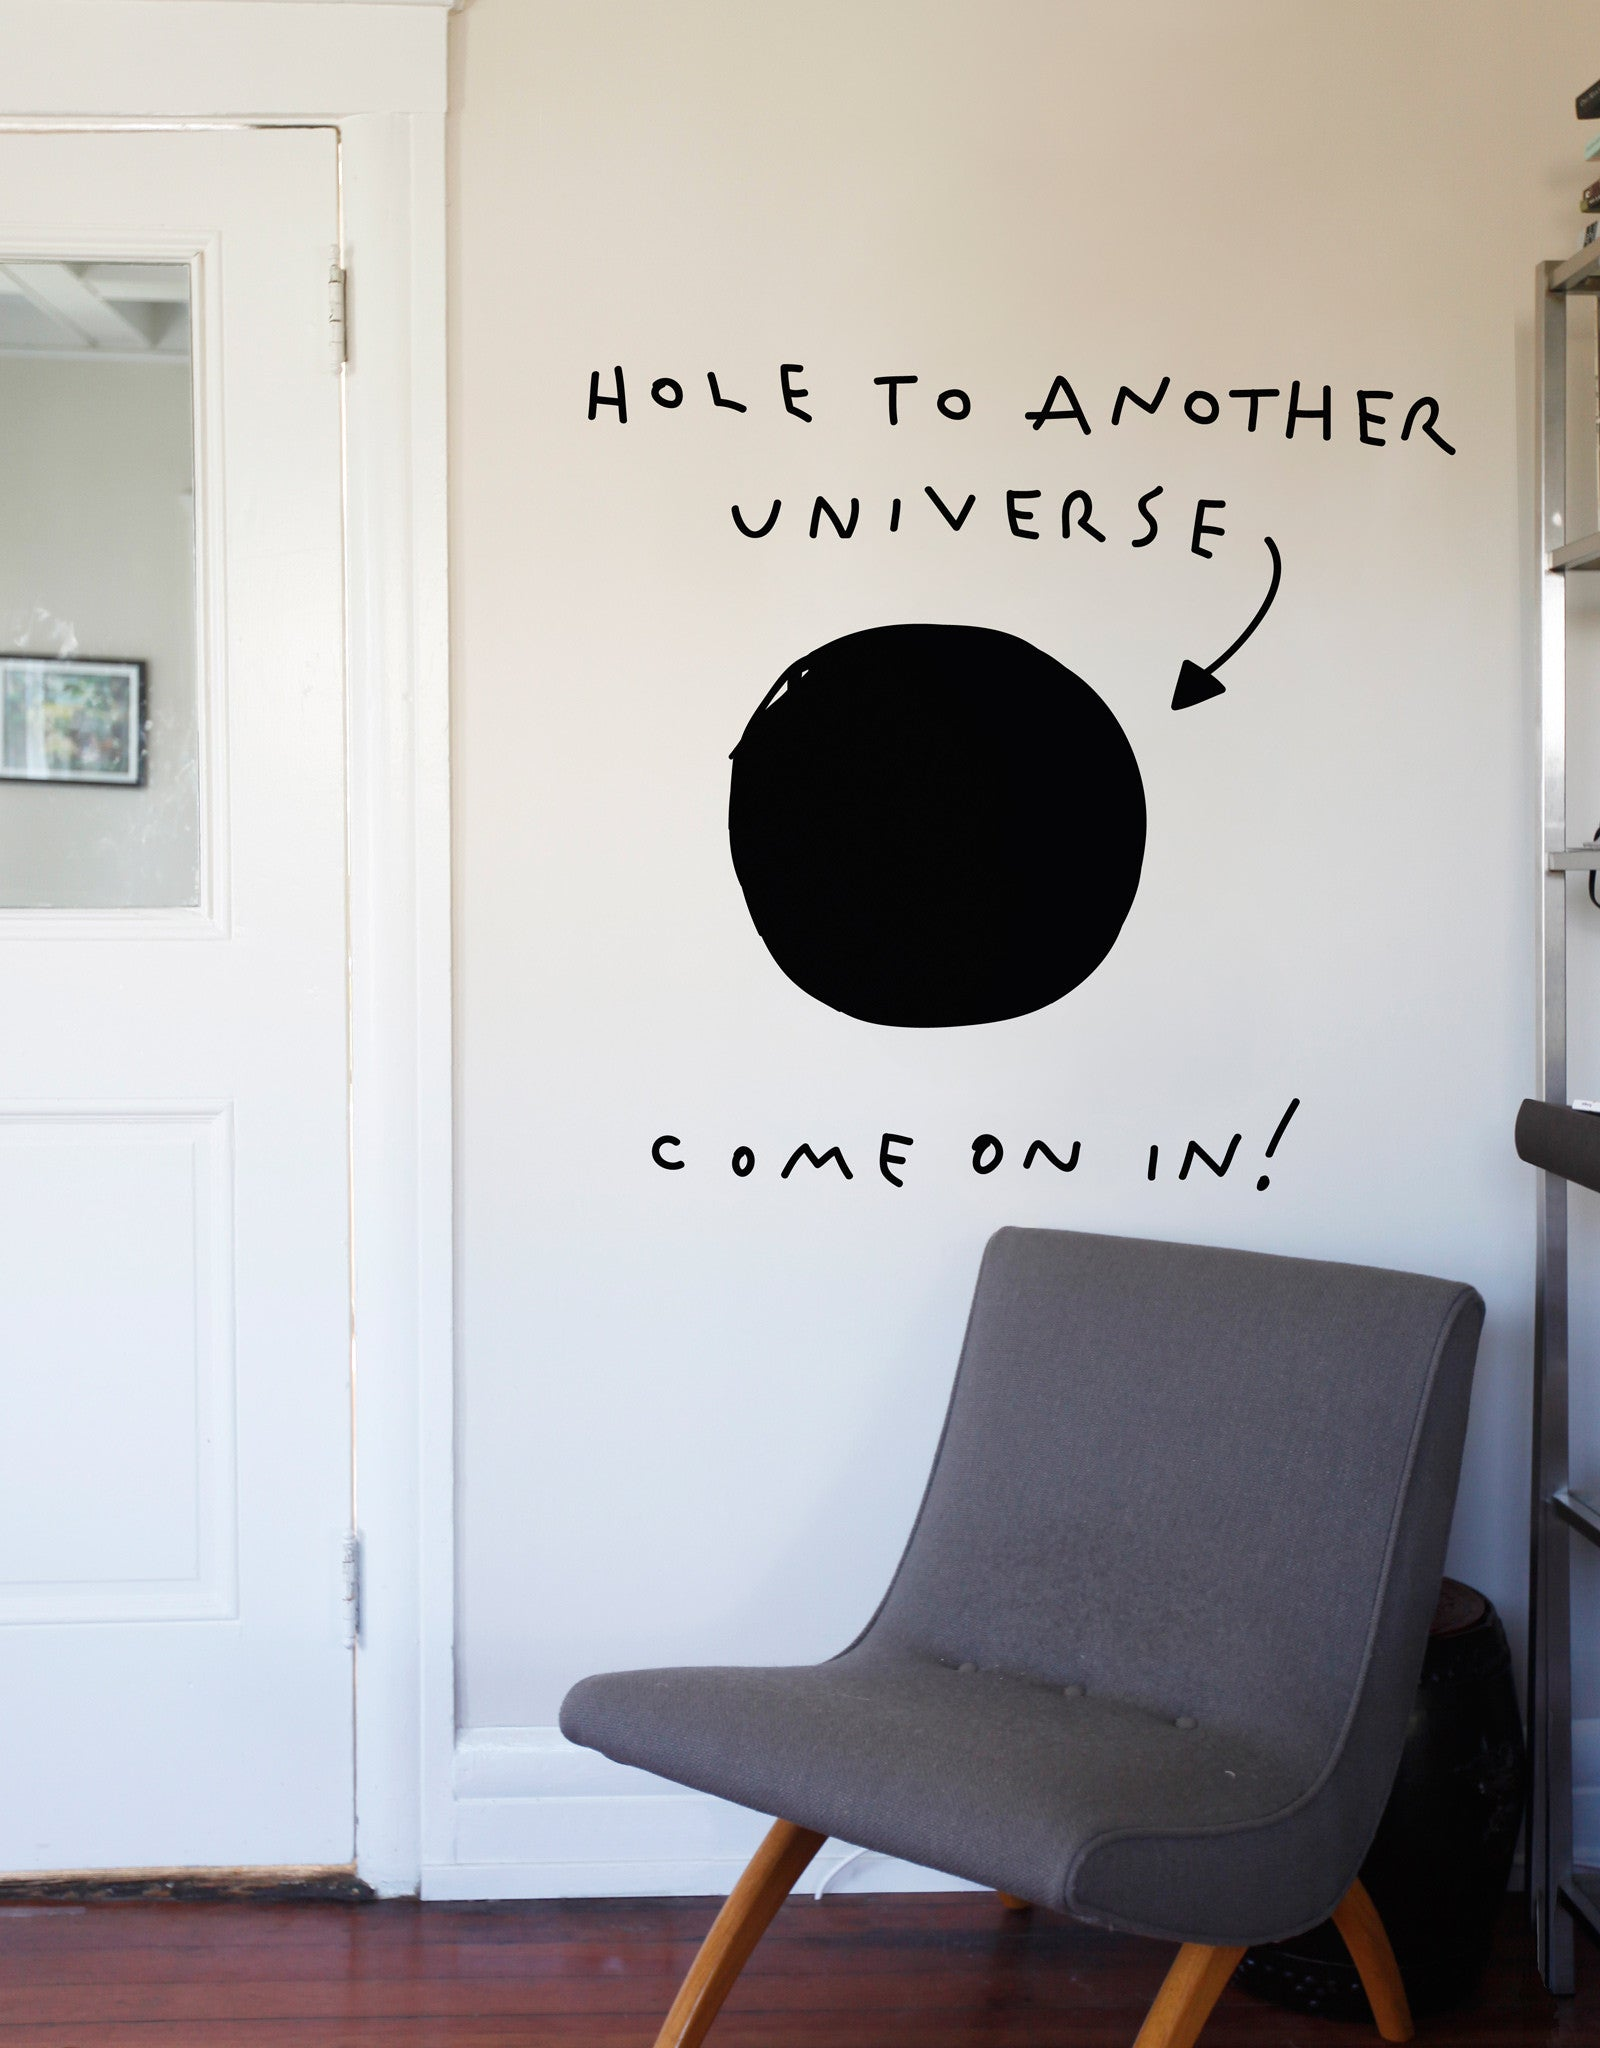 Hole To Another Universe · Hole To Another Universe